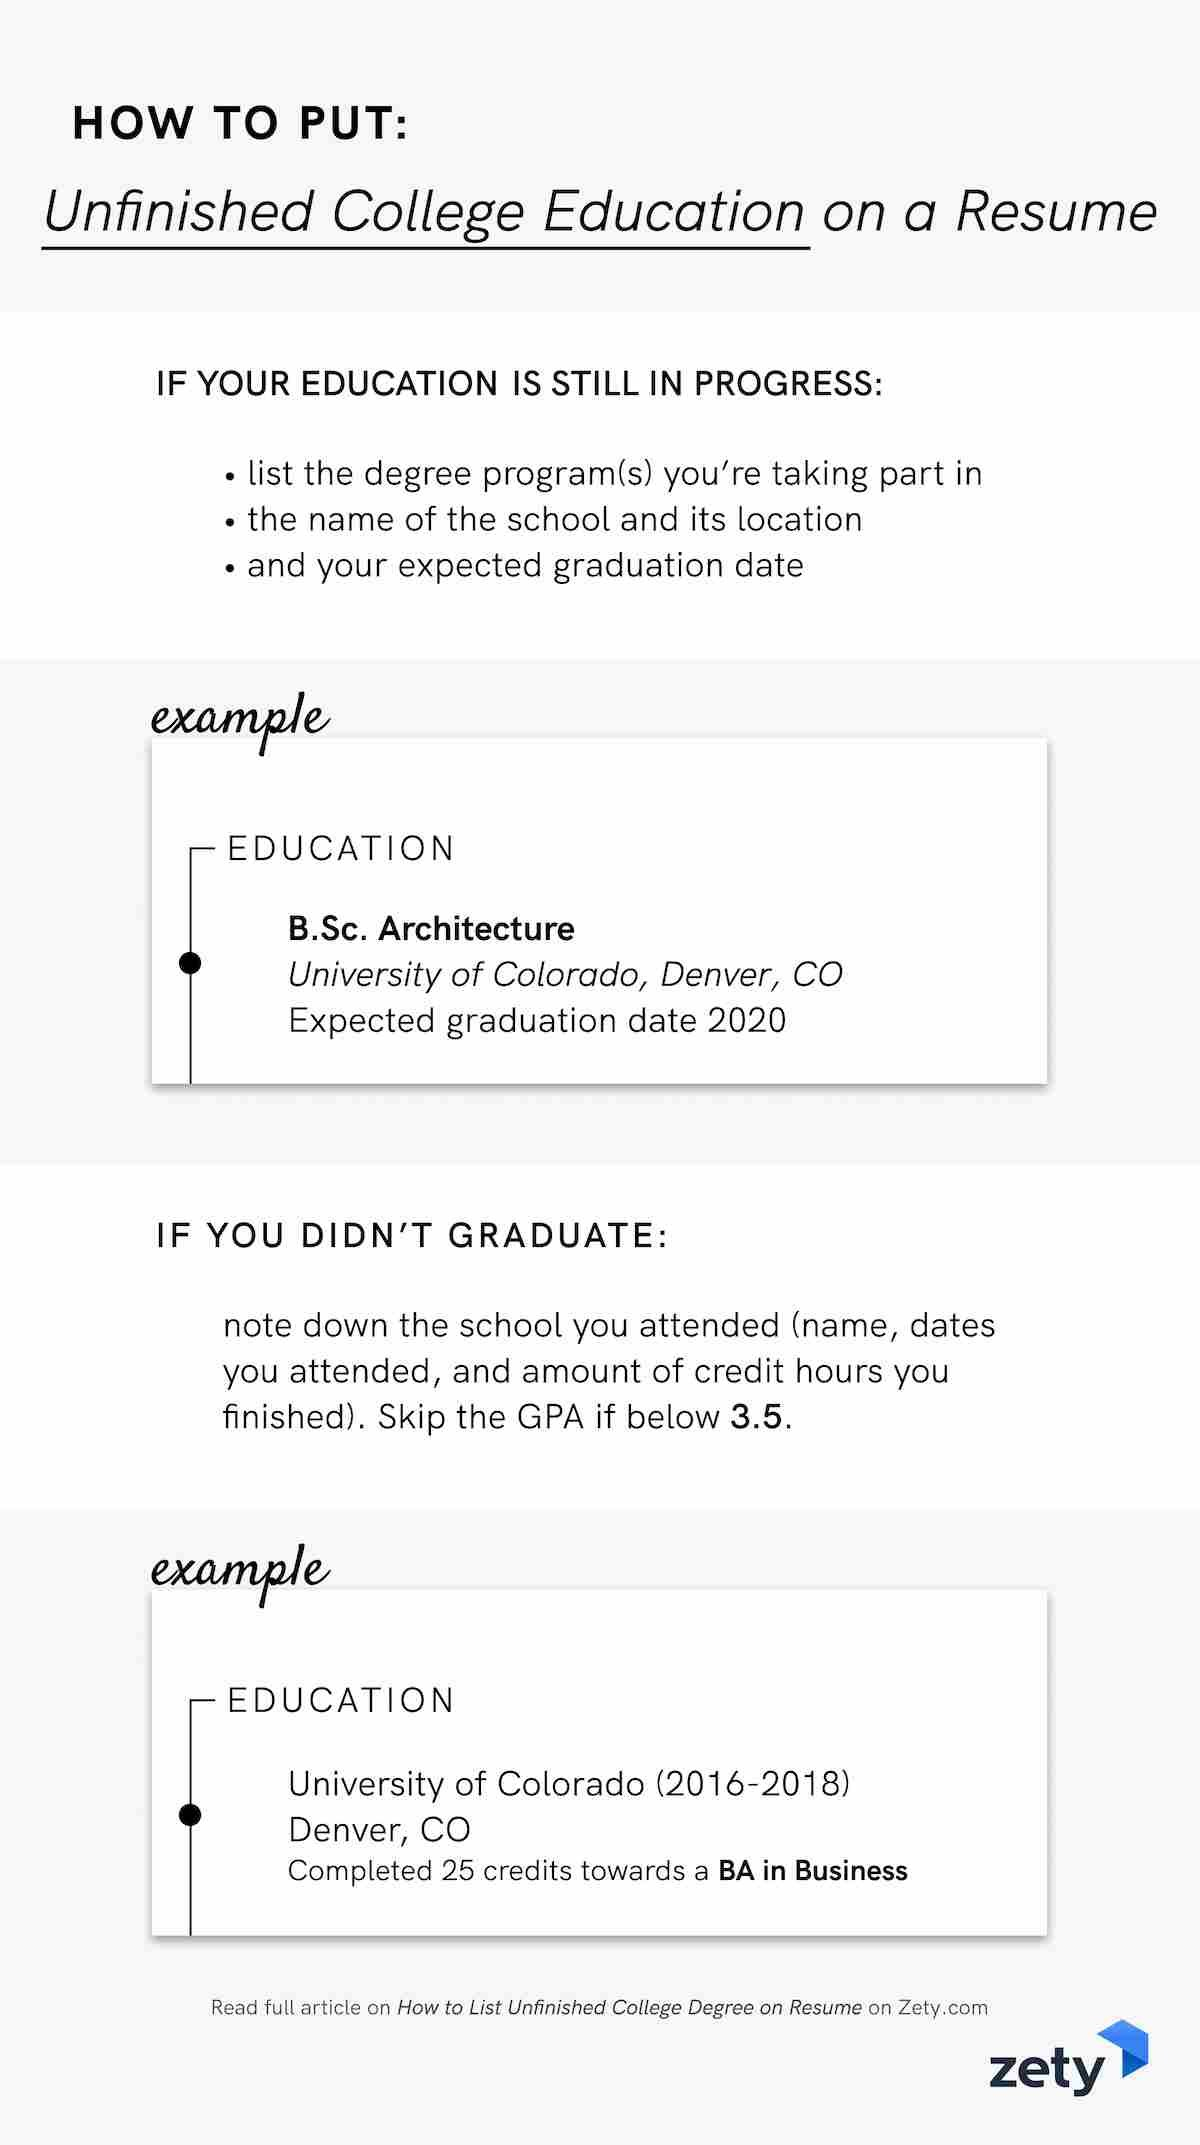 to unfinished college degree on resume examples for non graduate donna hargens Resume Resume For Non Graduate